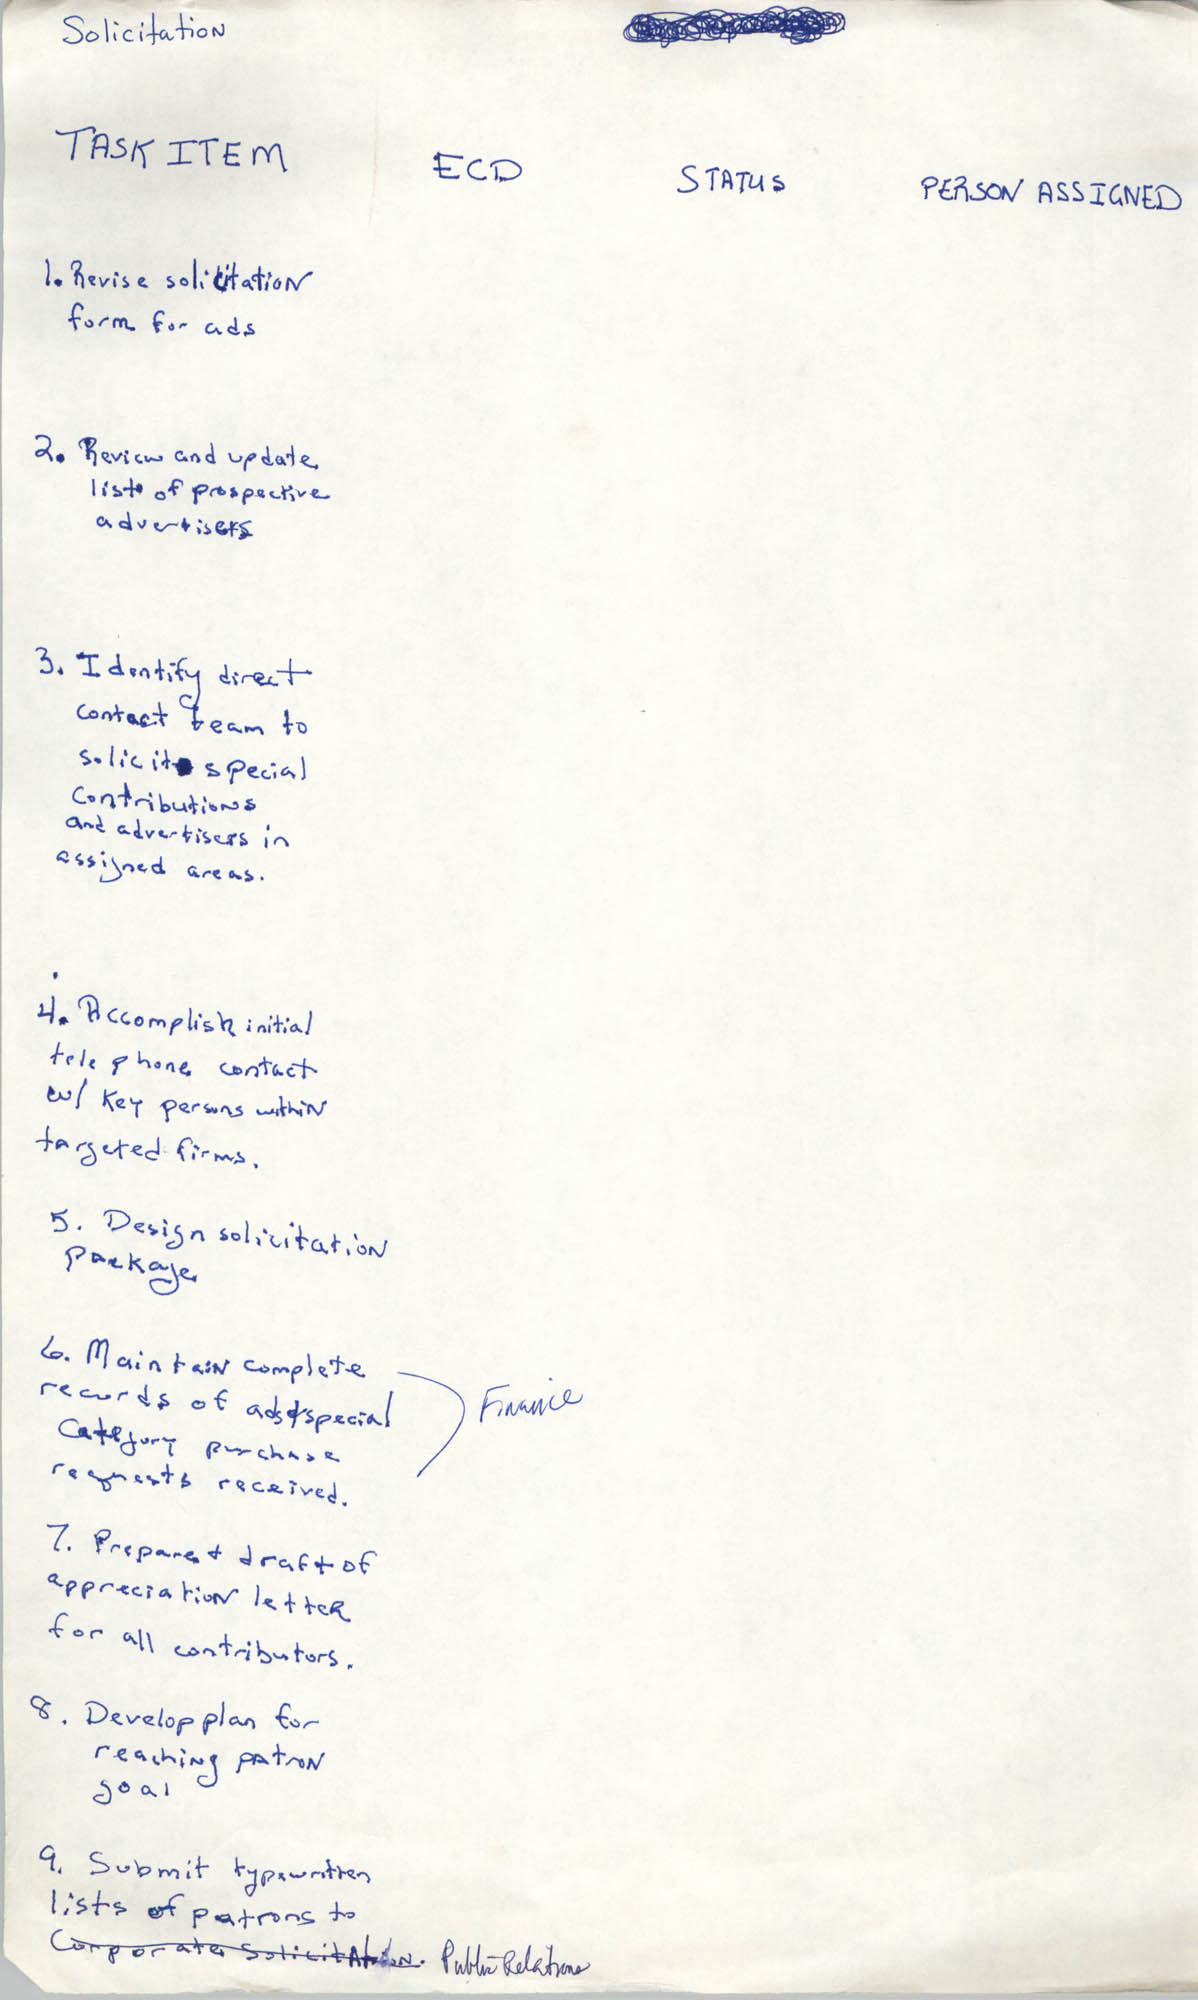 Handwritten List of Tasks, Solicitations